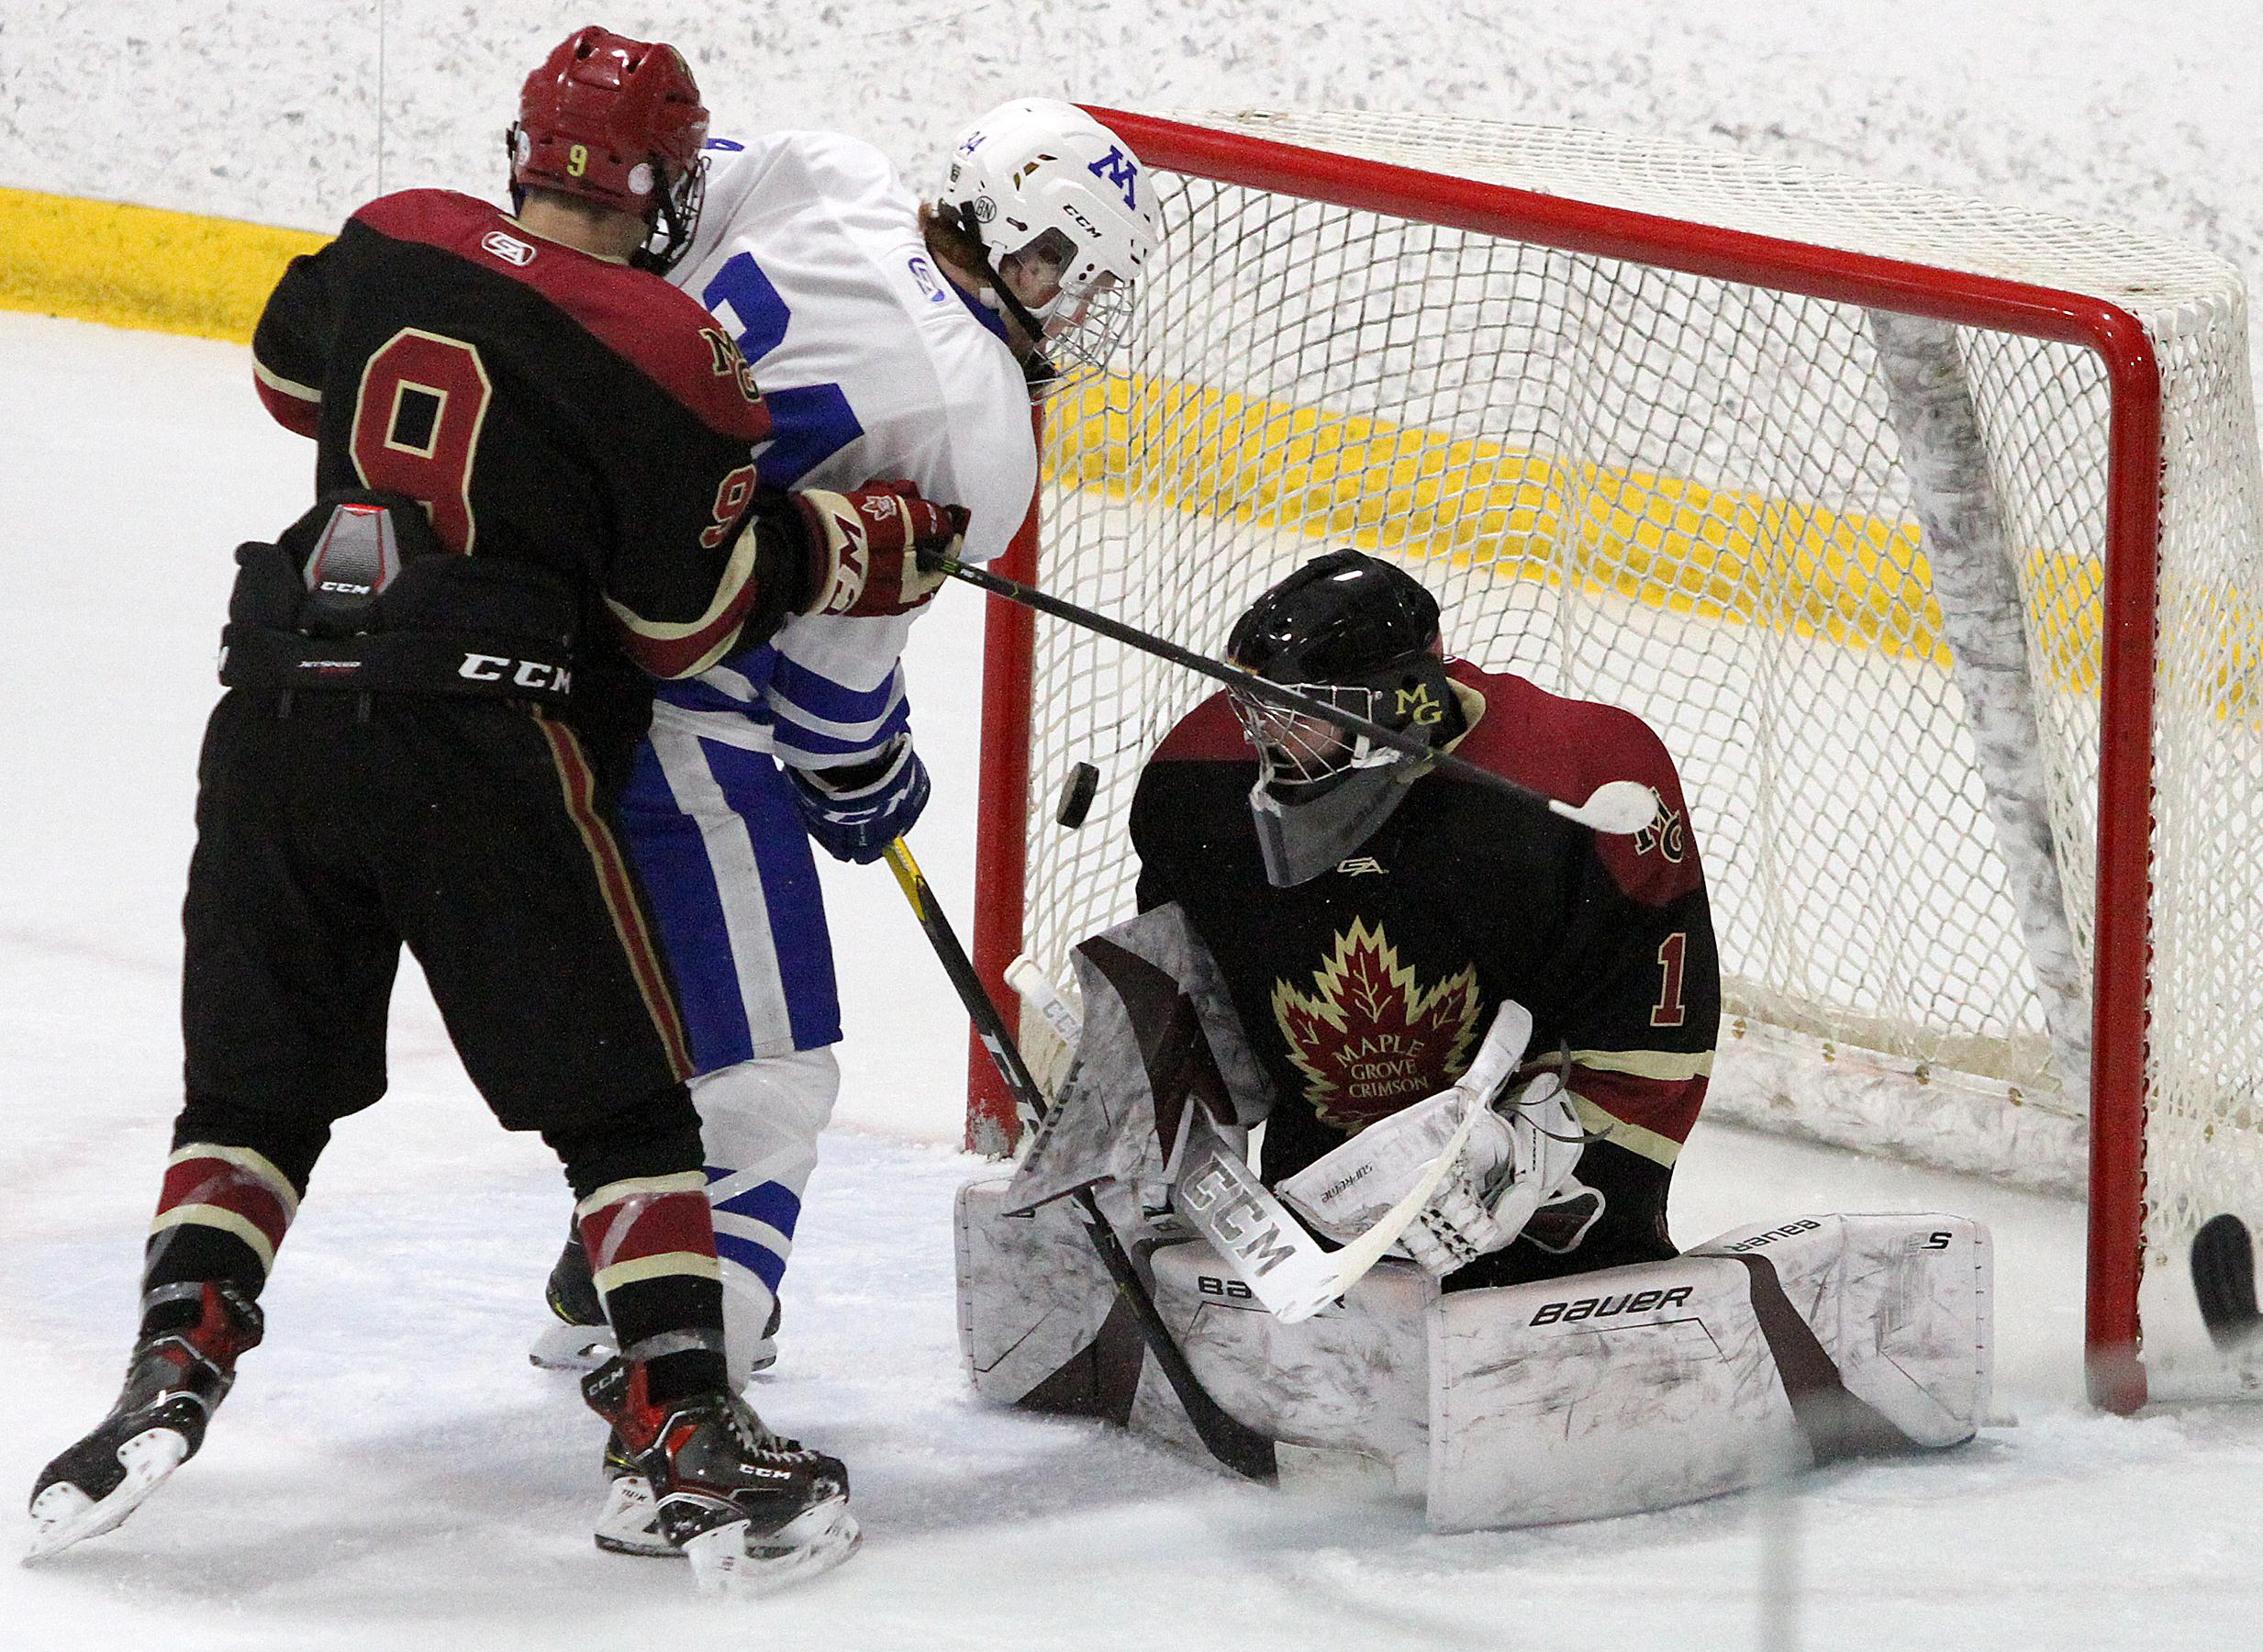 Minnetonka forward Teddy Lagerback battles for the puck in the crease between Maple Grove goalie Jack Wieneke and center Kyle Kukkonen during the third period of Friday night's game at The Tradition in the Park Classic. Photo by Drew Herron, SportsEngine